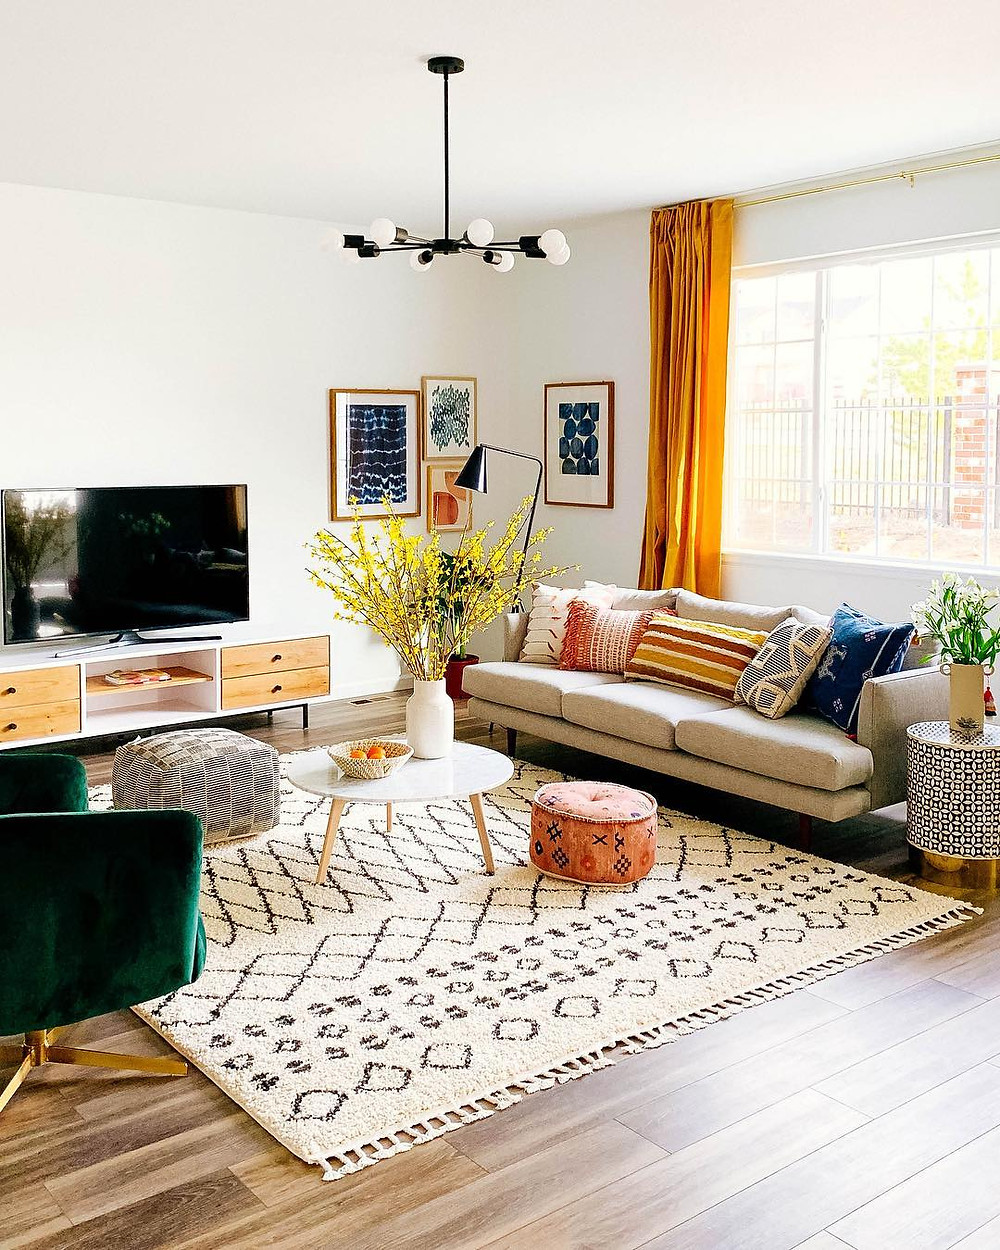 Colorful home decor in bold interior design living room with mix and match colors, patterns, and textures